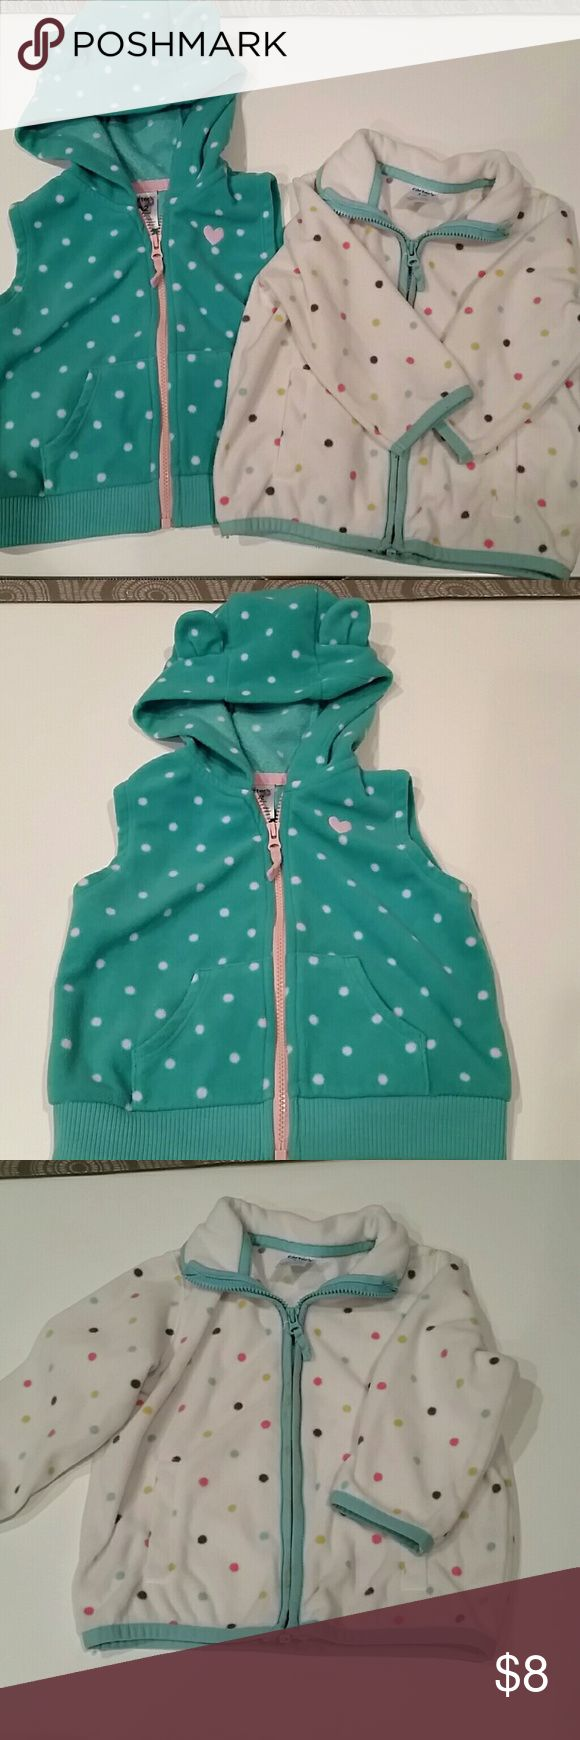 KIDS - 12 MOS. Set of three fleece zip ups Three zip up fleece, size 12 mos.  One green polka dots with hood (adorable little ears on hood) and it's sleeveless.  One pink with brown trim, sleeveless, no hood. One white with polka dots, long sleeve, no hood. All 3 zip up and have pockets. In gently used condition. Carter's Shirts & Tops Sweatshirts & Hoodies